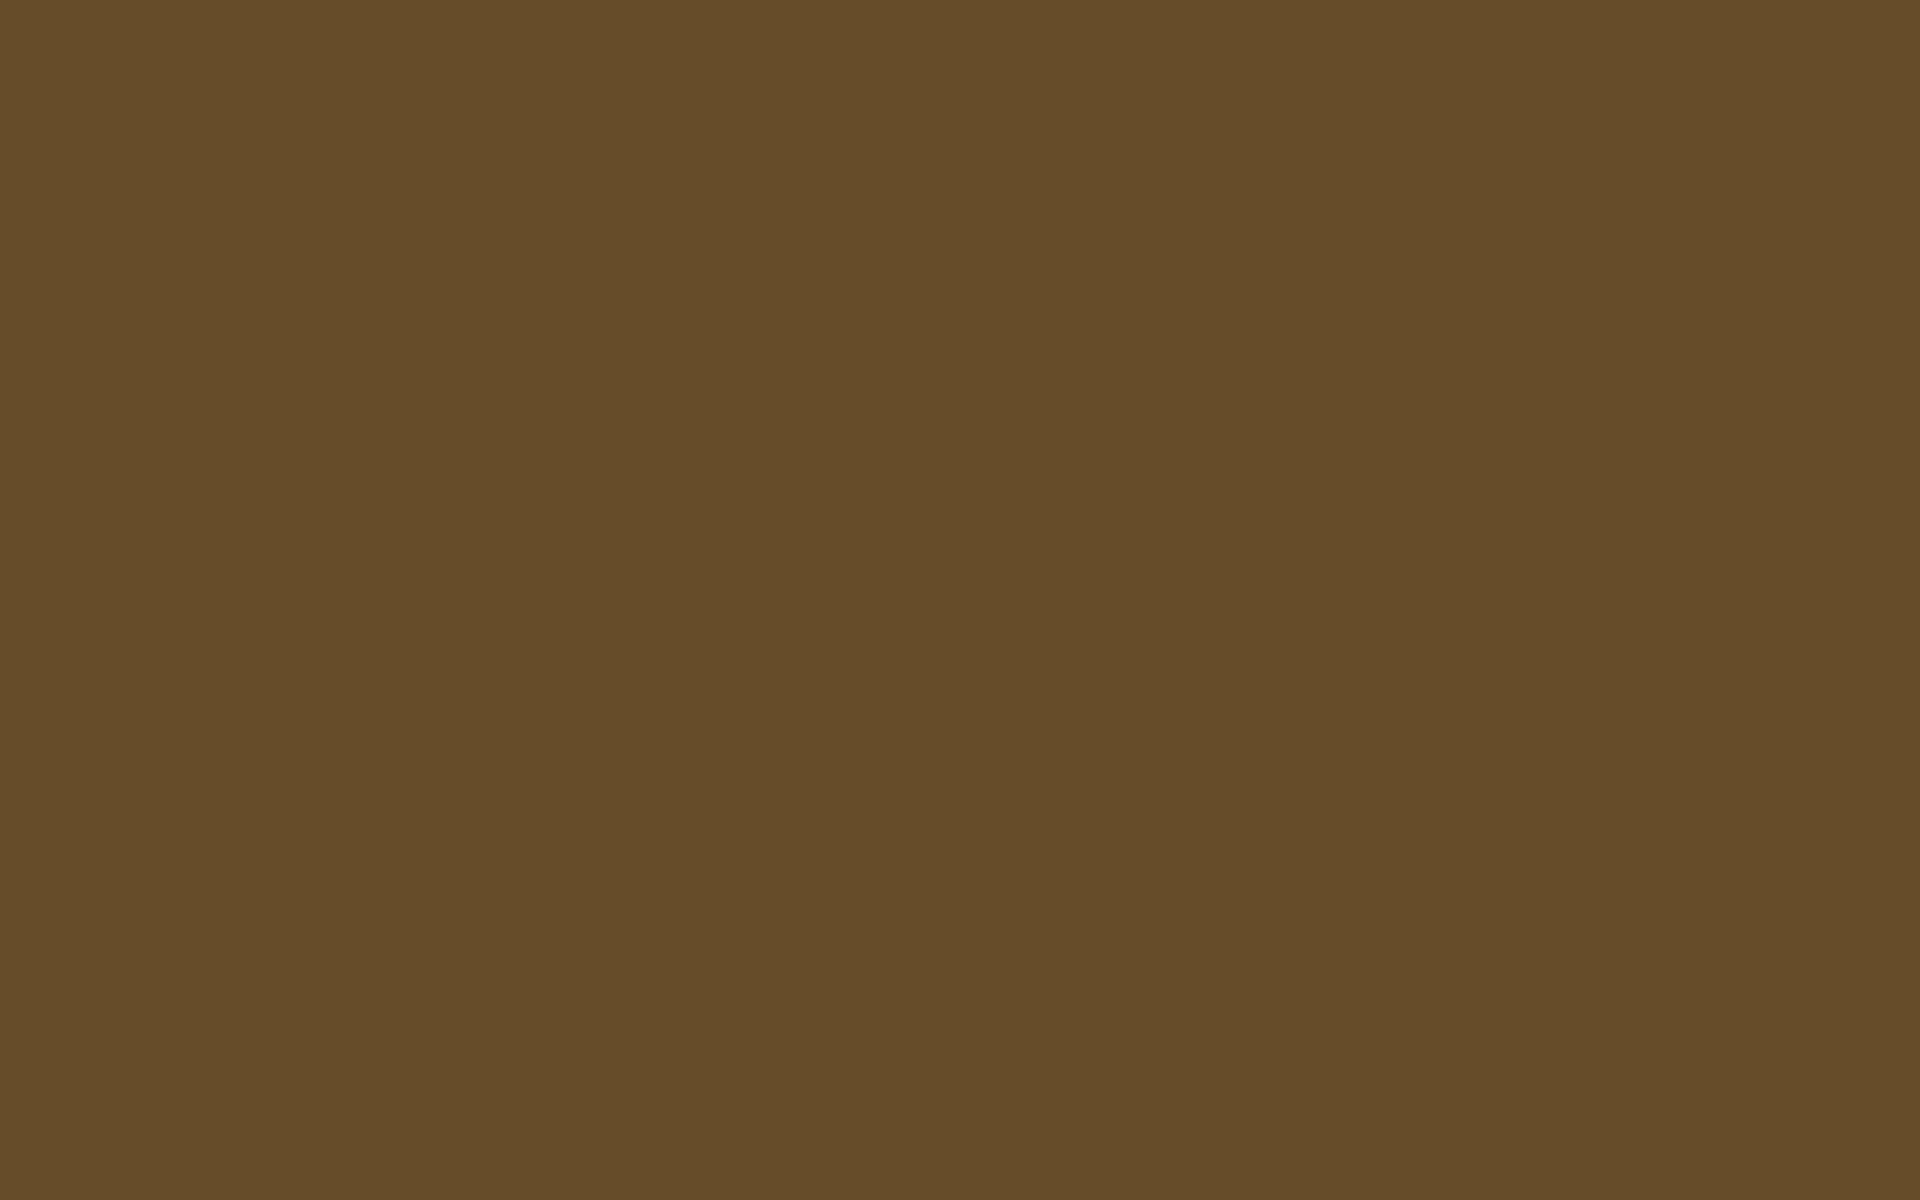 1920x1200 Donkey Brown Solid Color Background